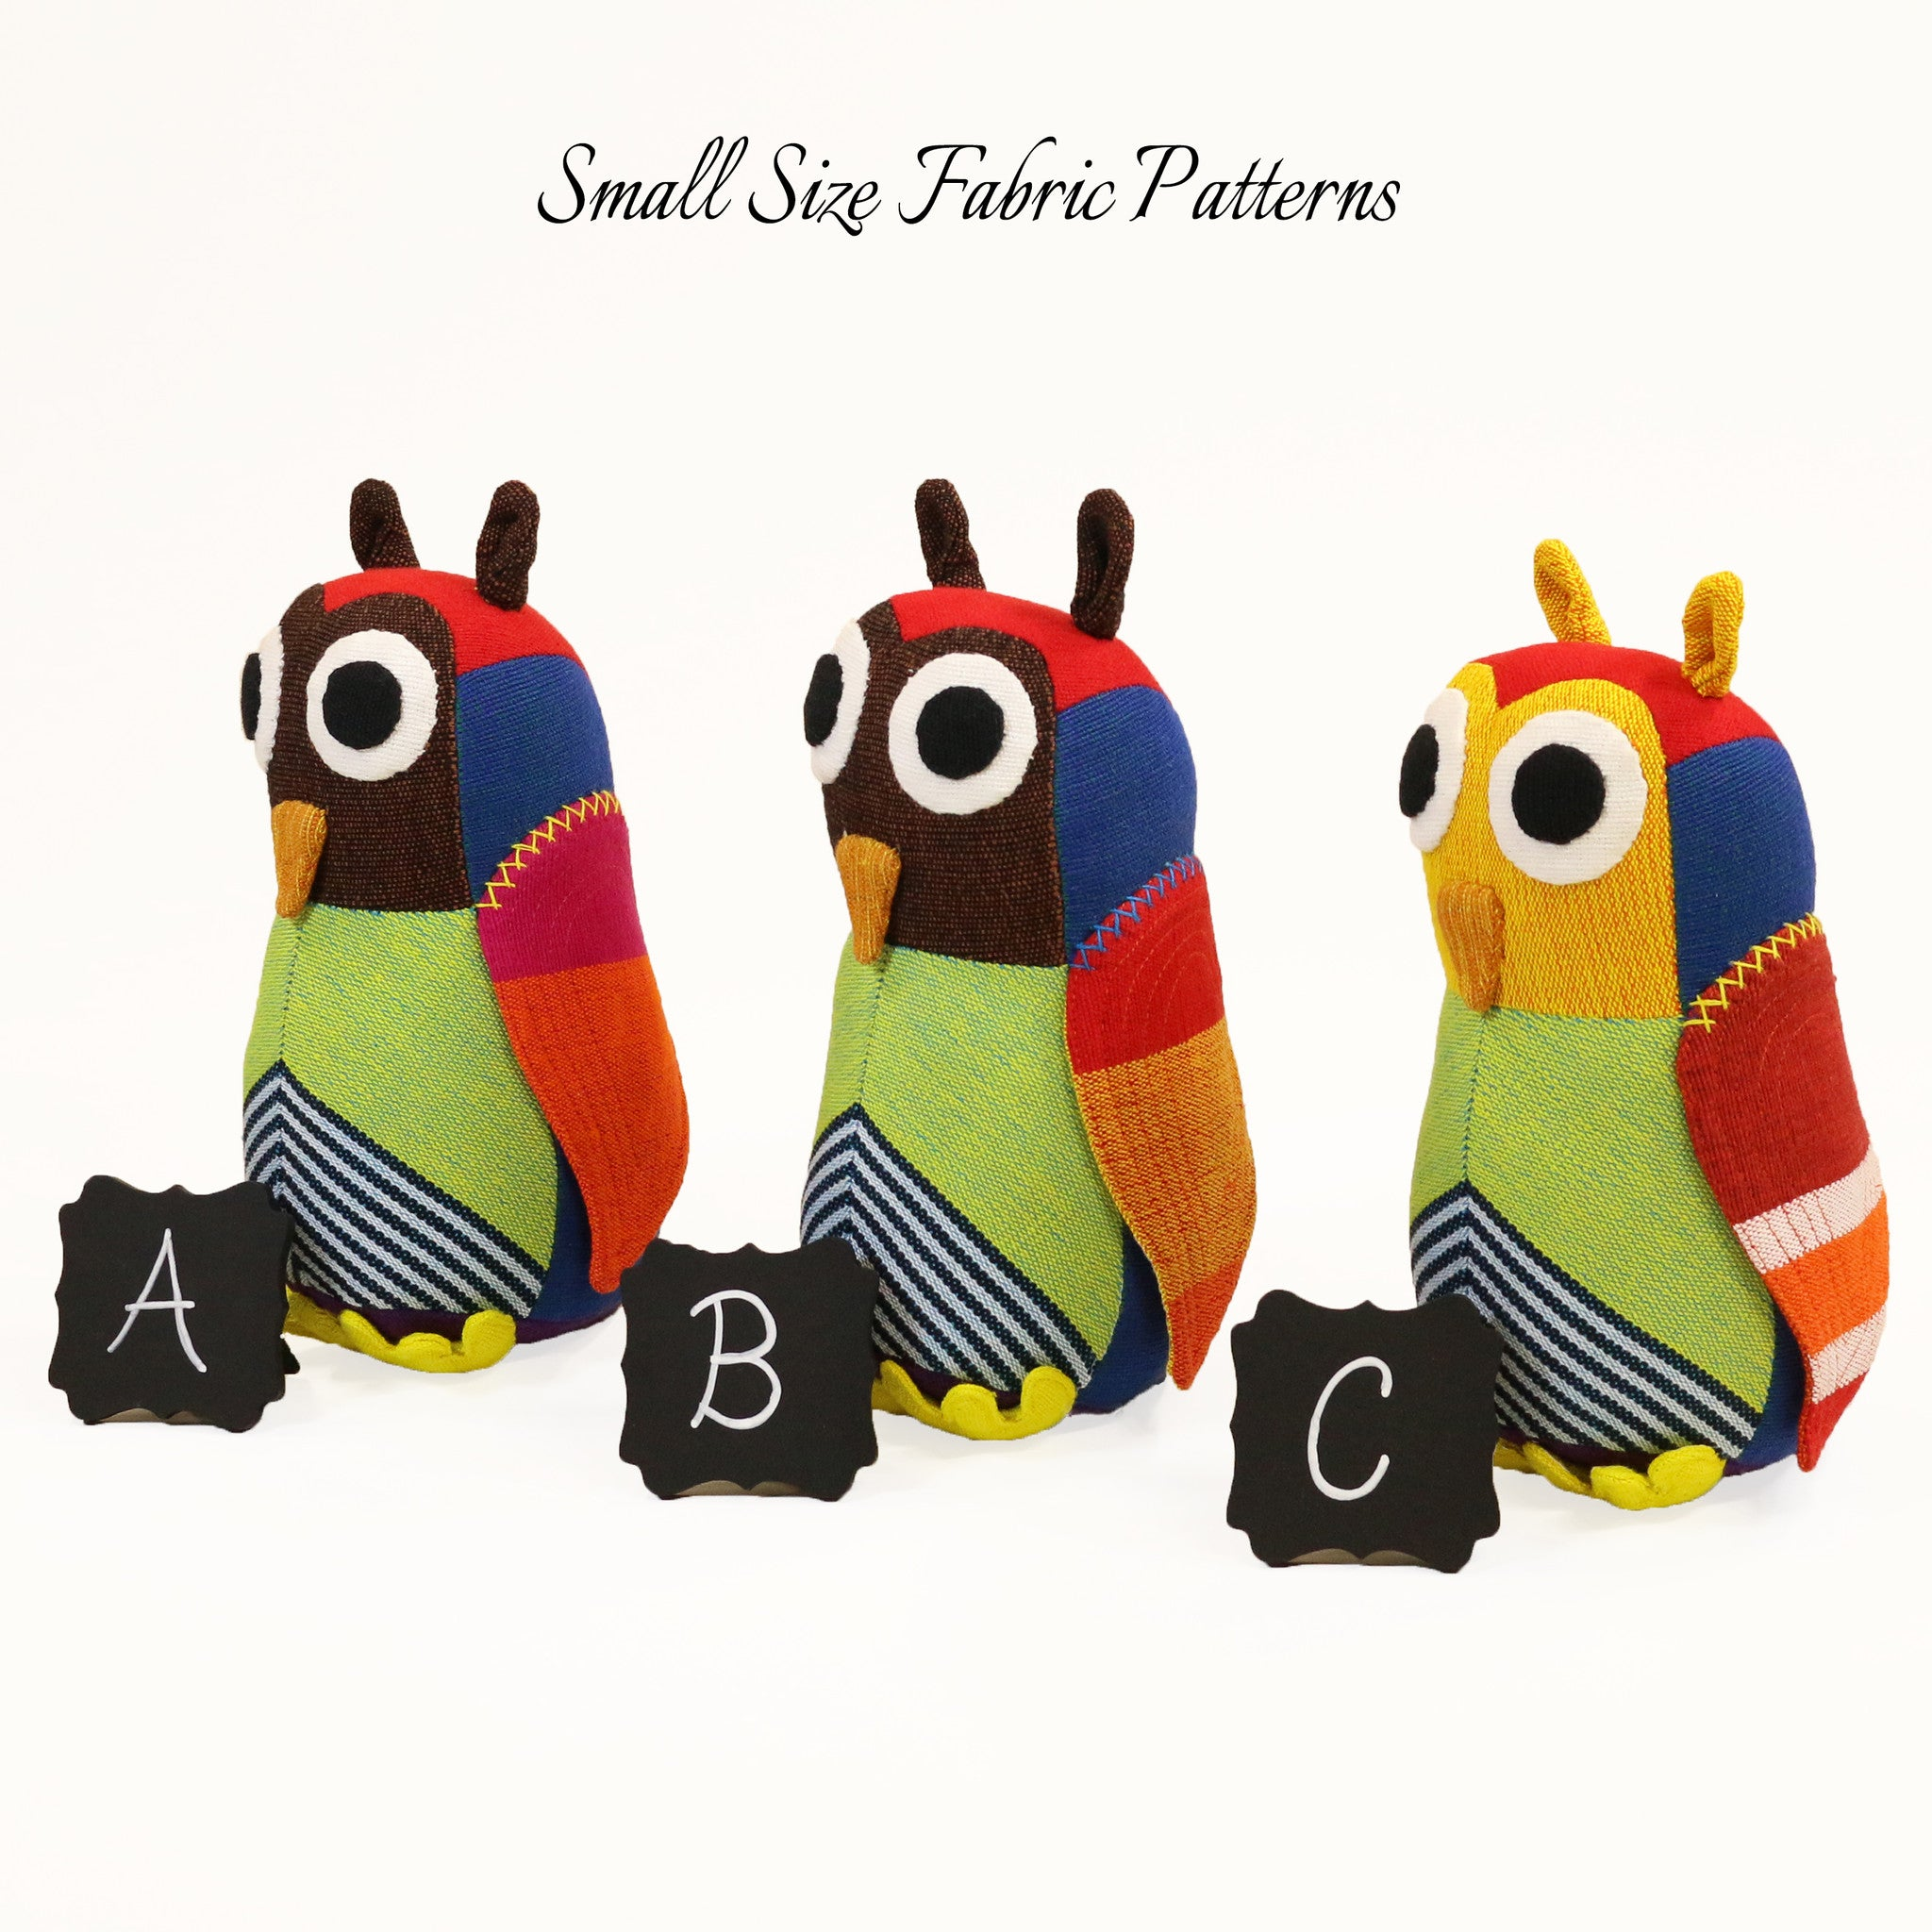 Harper, the Owl – all small size fabric patterns shown